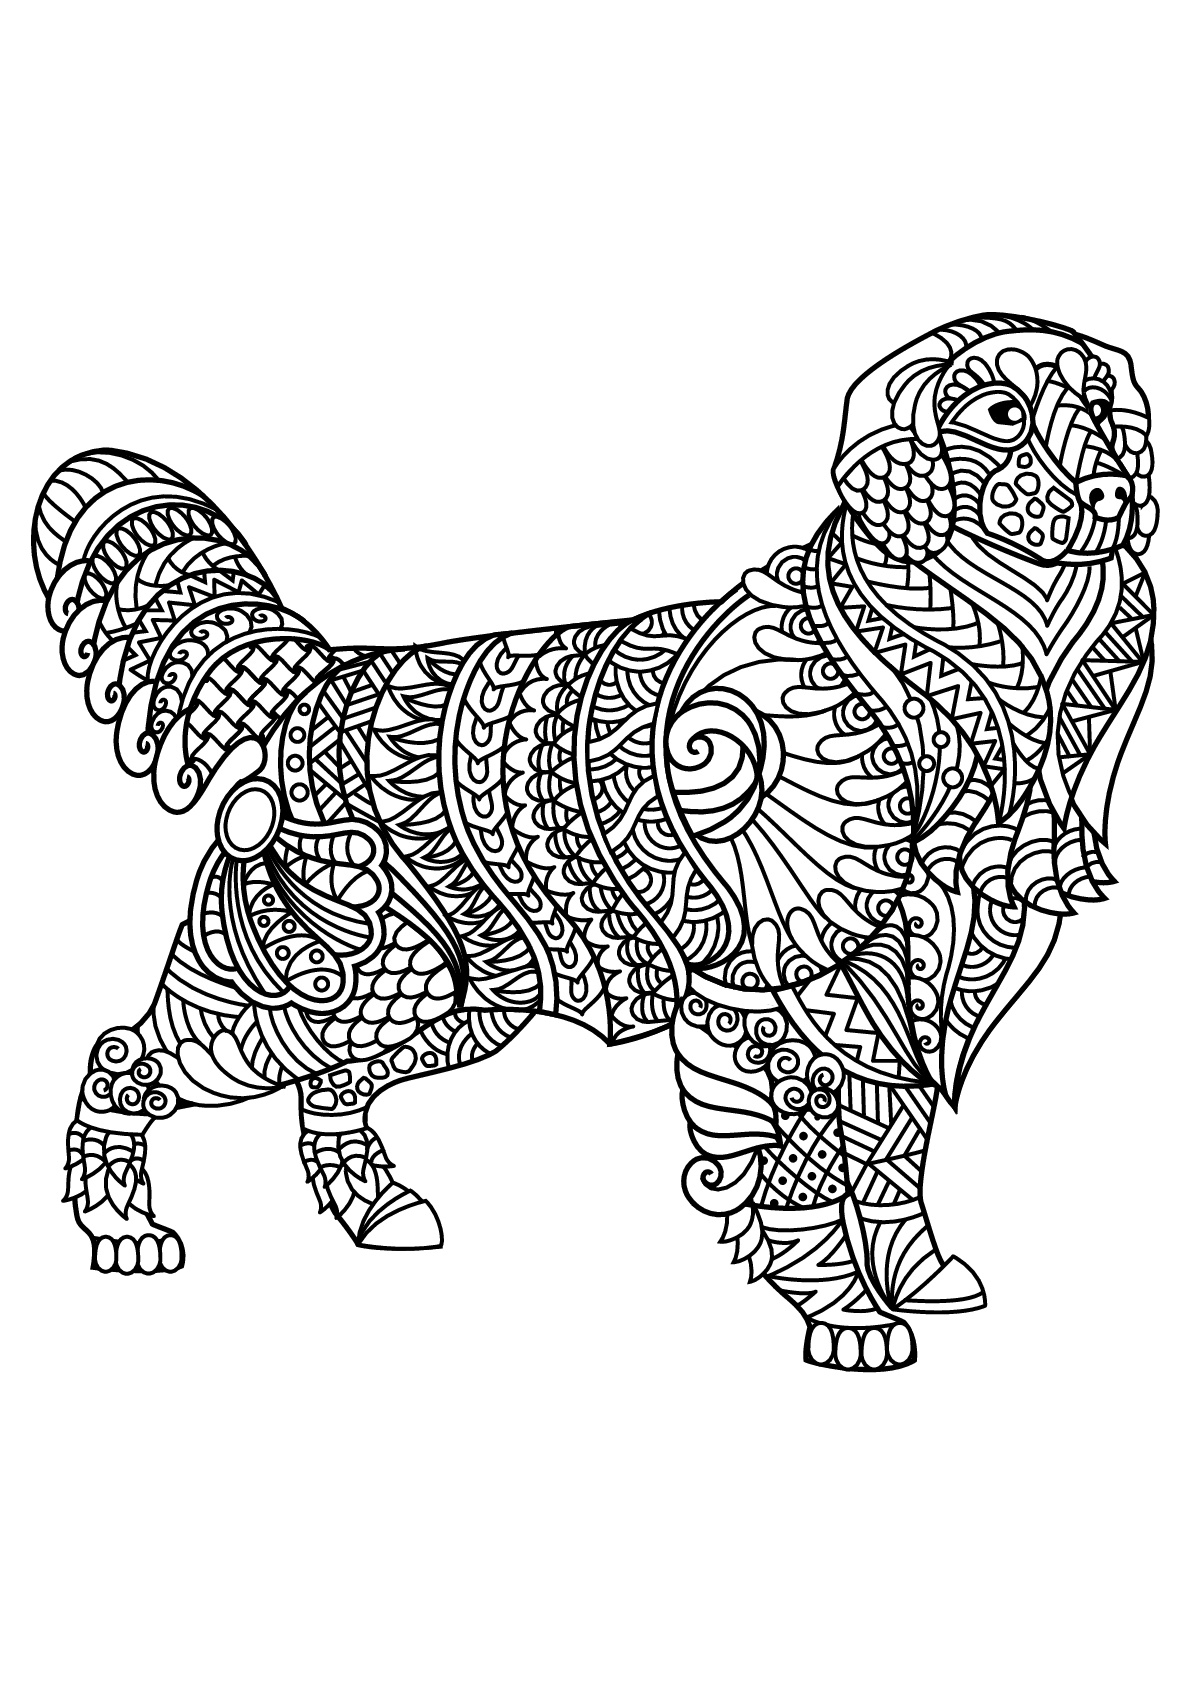 Bulldog Coloring pages - Just Color : Coloring pages for adults